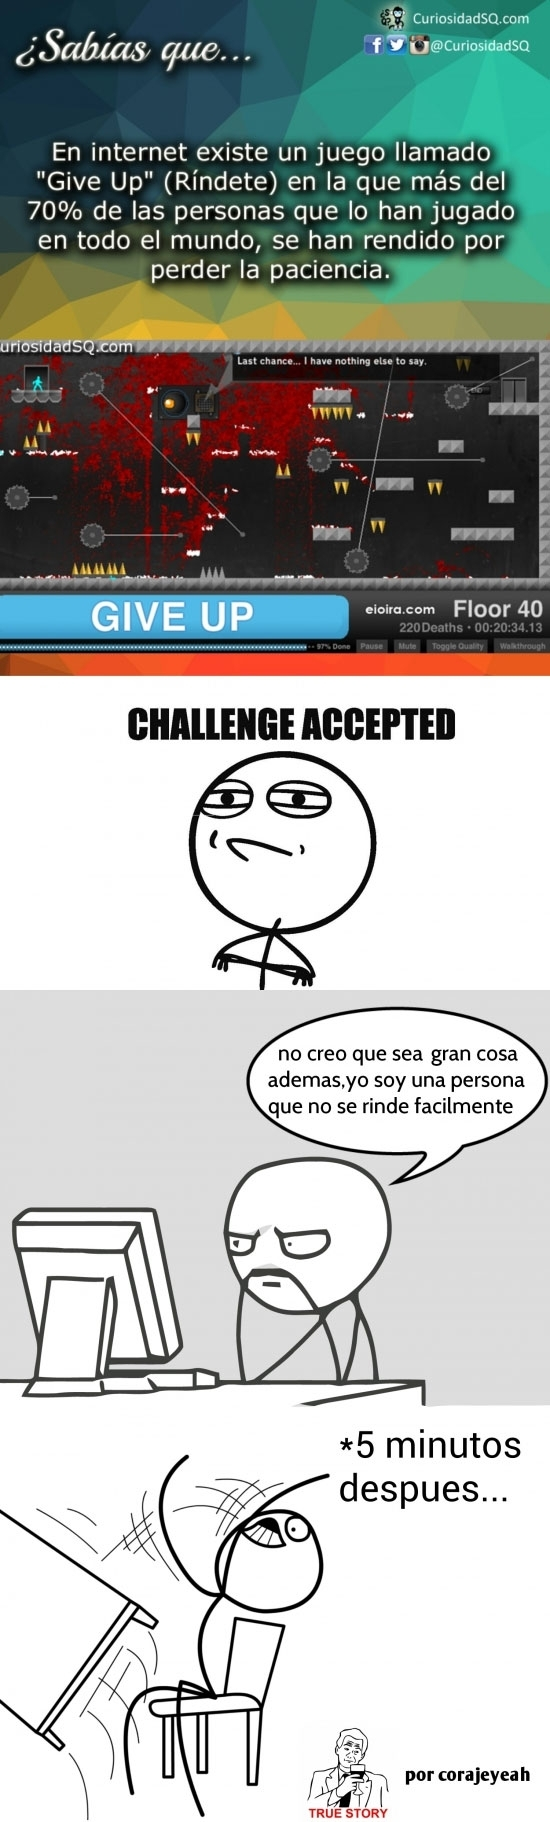 challenge accepted,computer guy,curiosidades,desk flip,give up,juego,paciencia